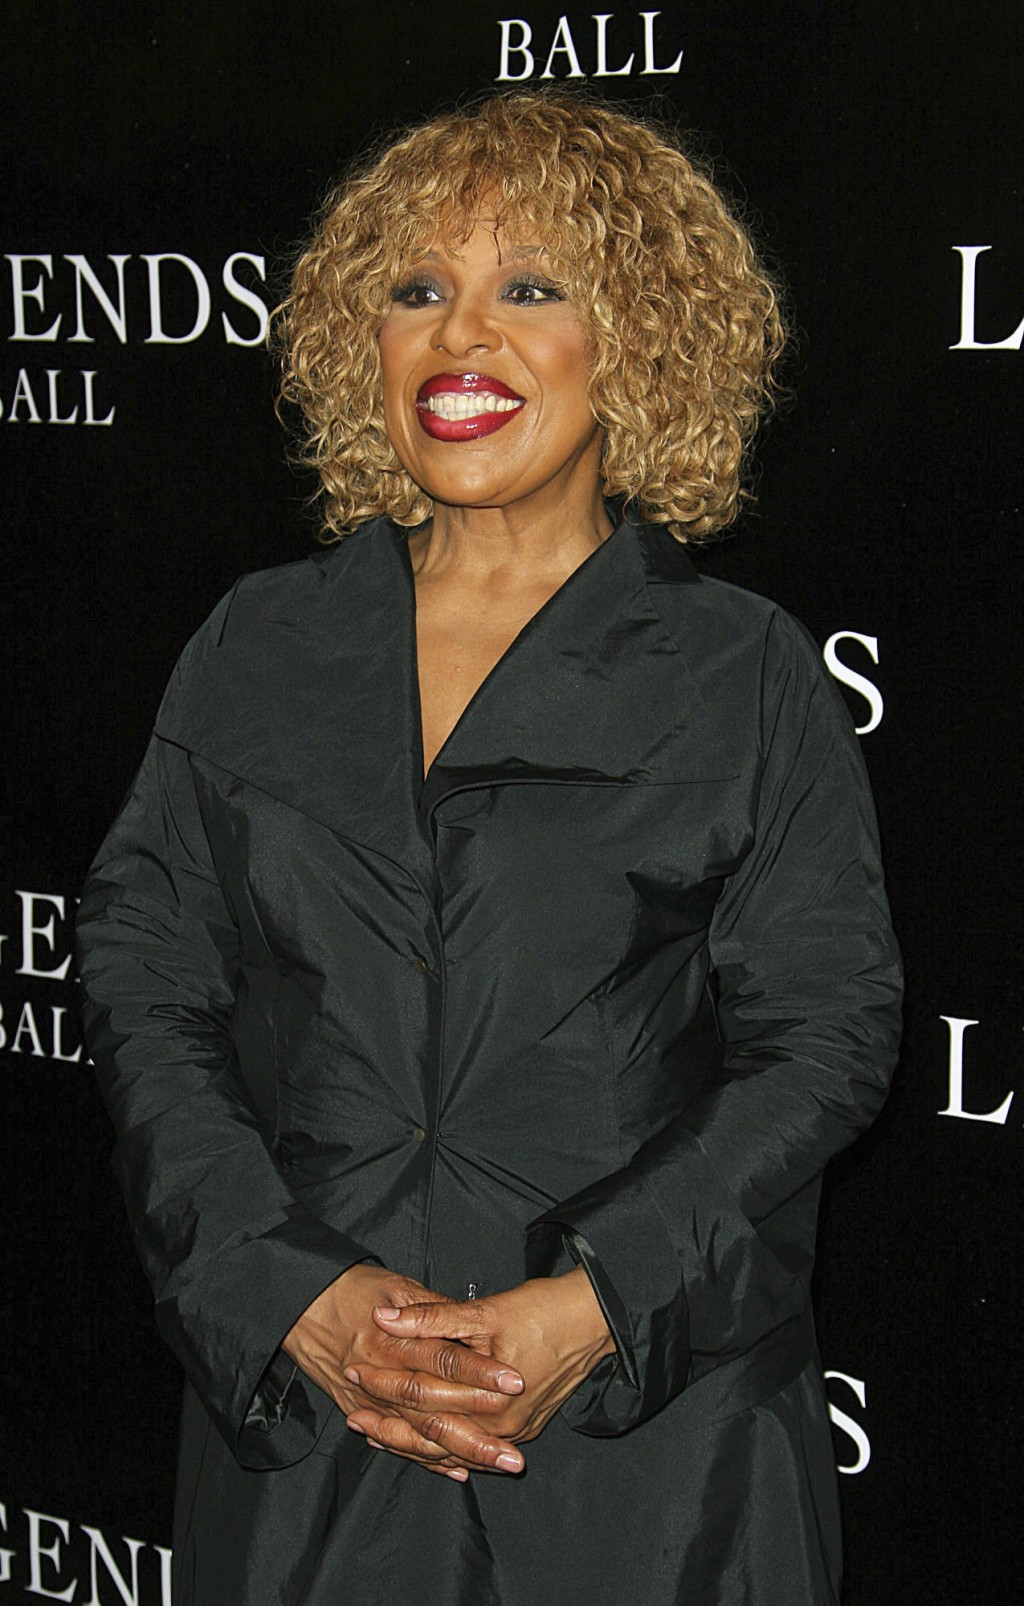 FILE - In this May 14, 2005 file photo, Roberta Flack arrives at the Legends Ball, an award ceremony in Santa Barbara, Calif., hosted by Oprah Winfrey